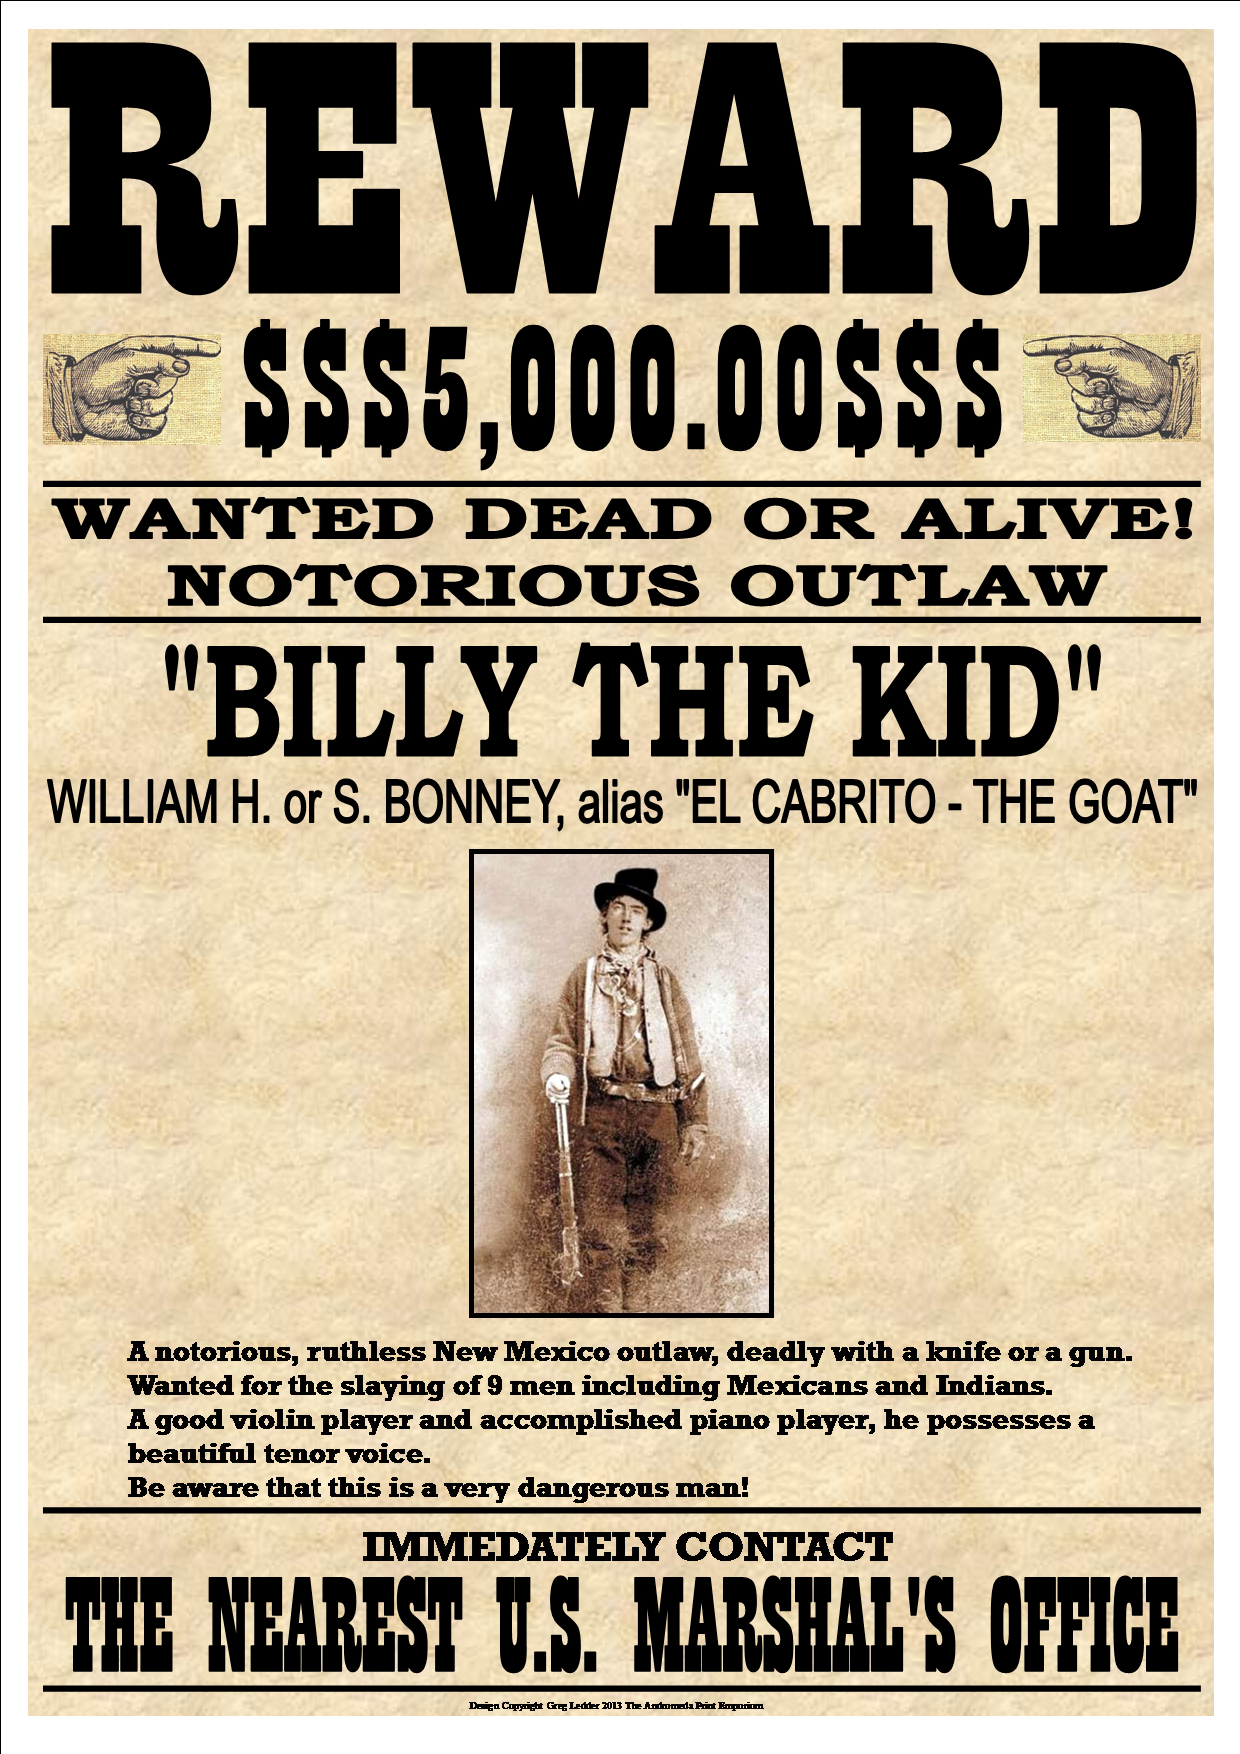 Billy The Kid Fantastic Western Style Wanted Poster From Andromeda Print Emporium Billy The Kids Old West Outlaws Old West Photos